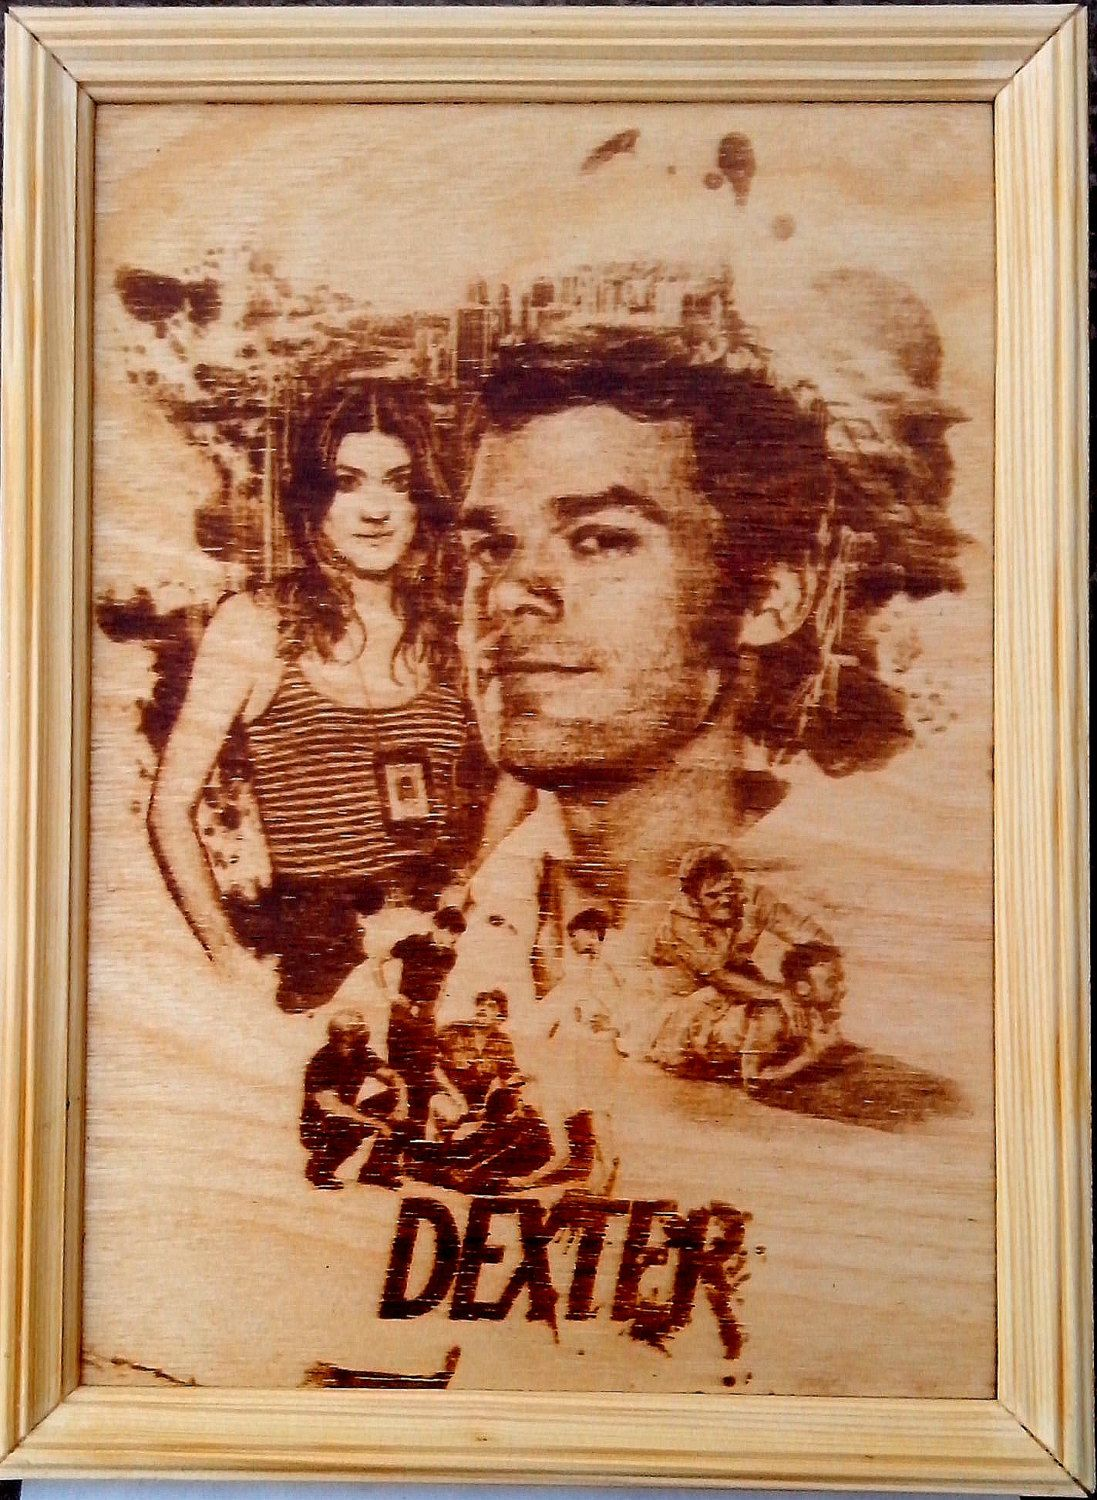 Dexter and Debra Morgan pyrography. Dark passenger, wood, burning, burn, gift. by PyroWell on Etsy